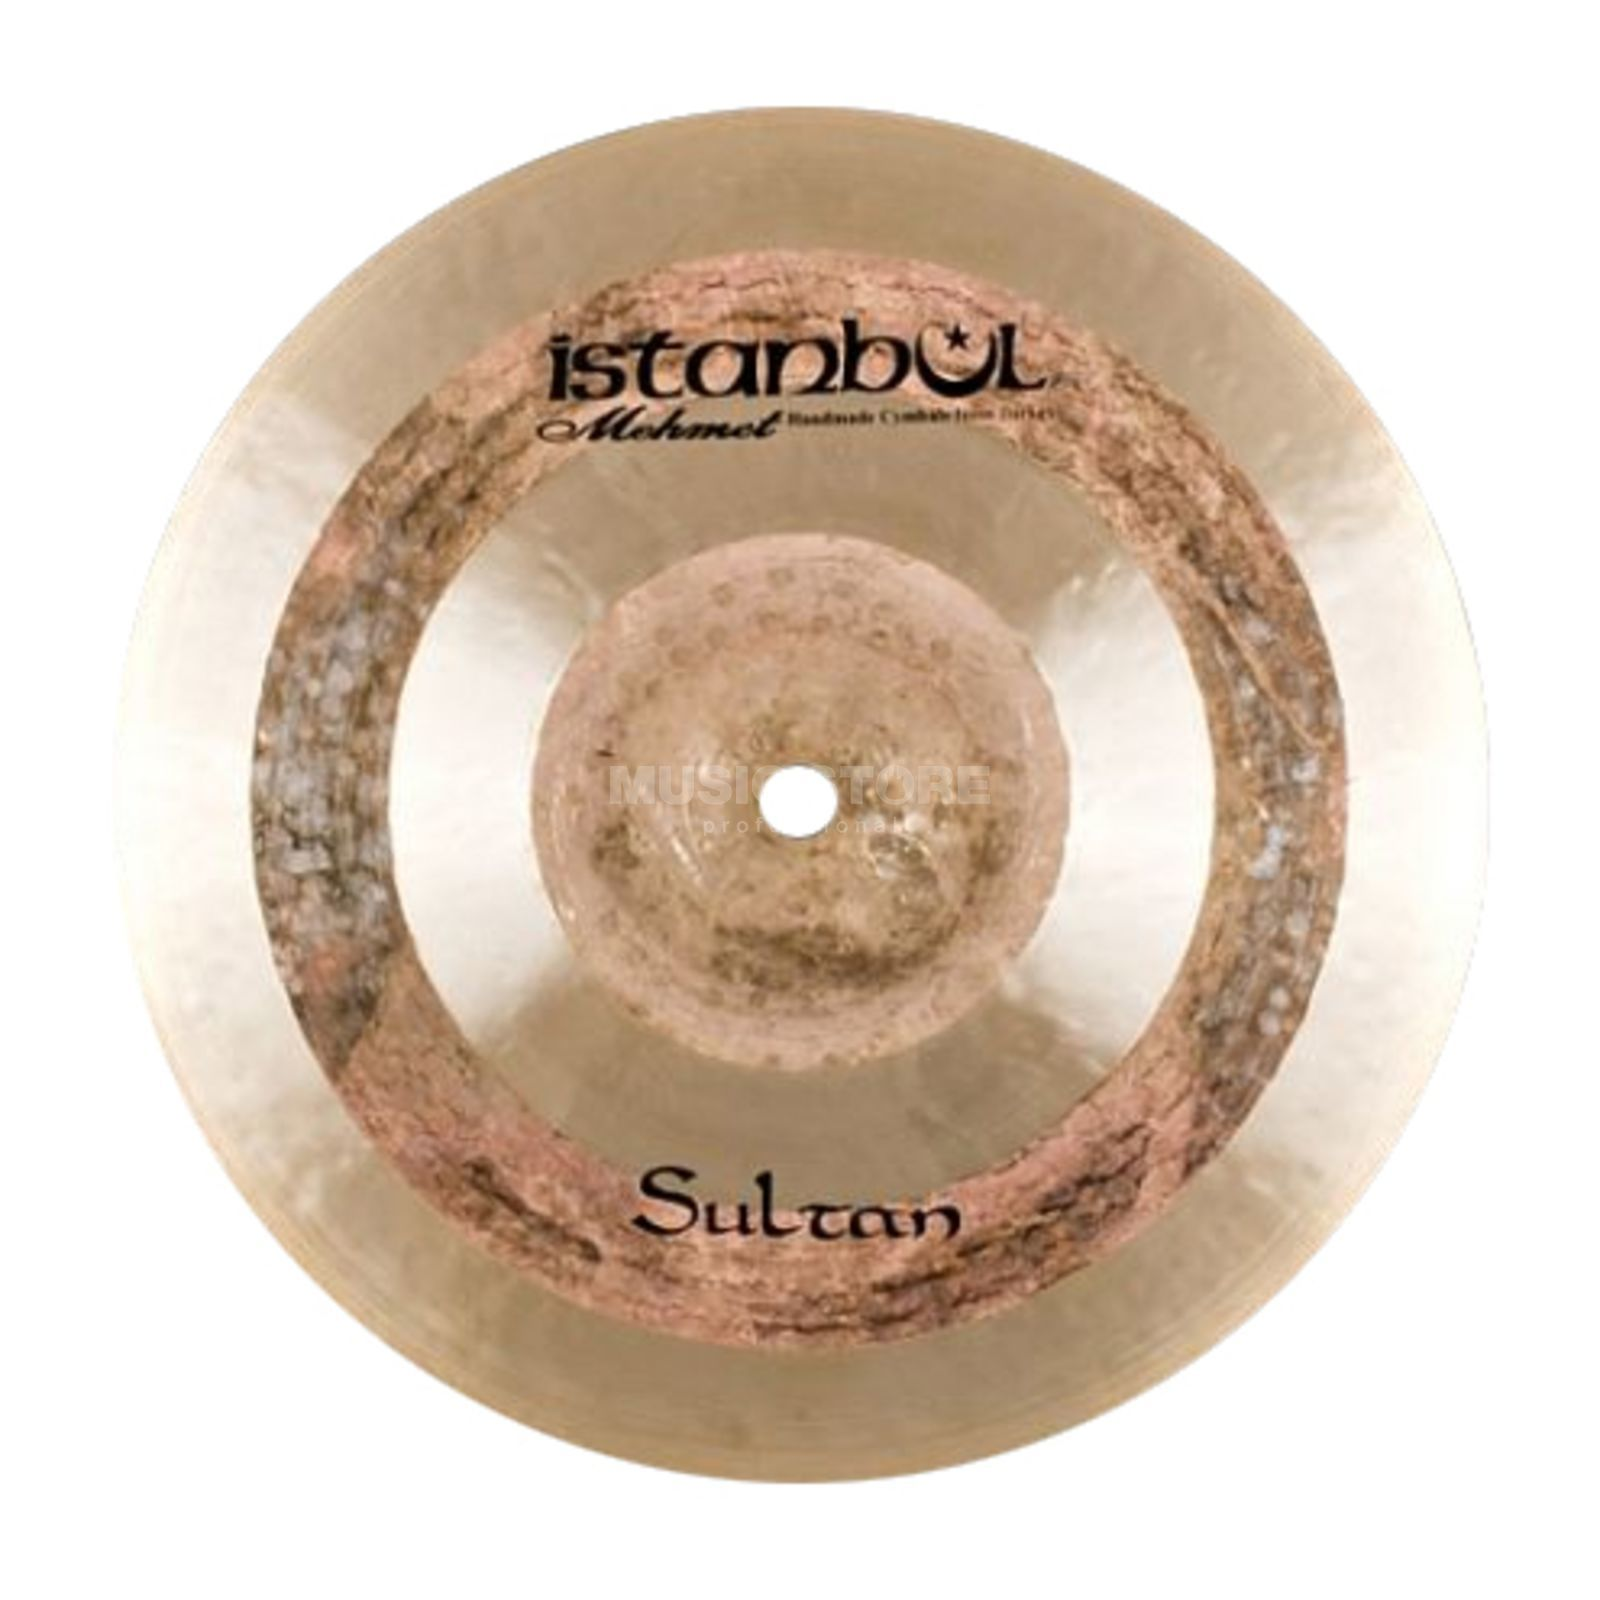 "Istanbul Sultan Splash 12"", SPS13 Product Image"